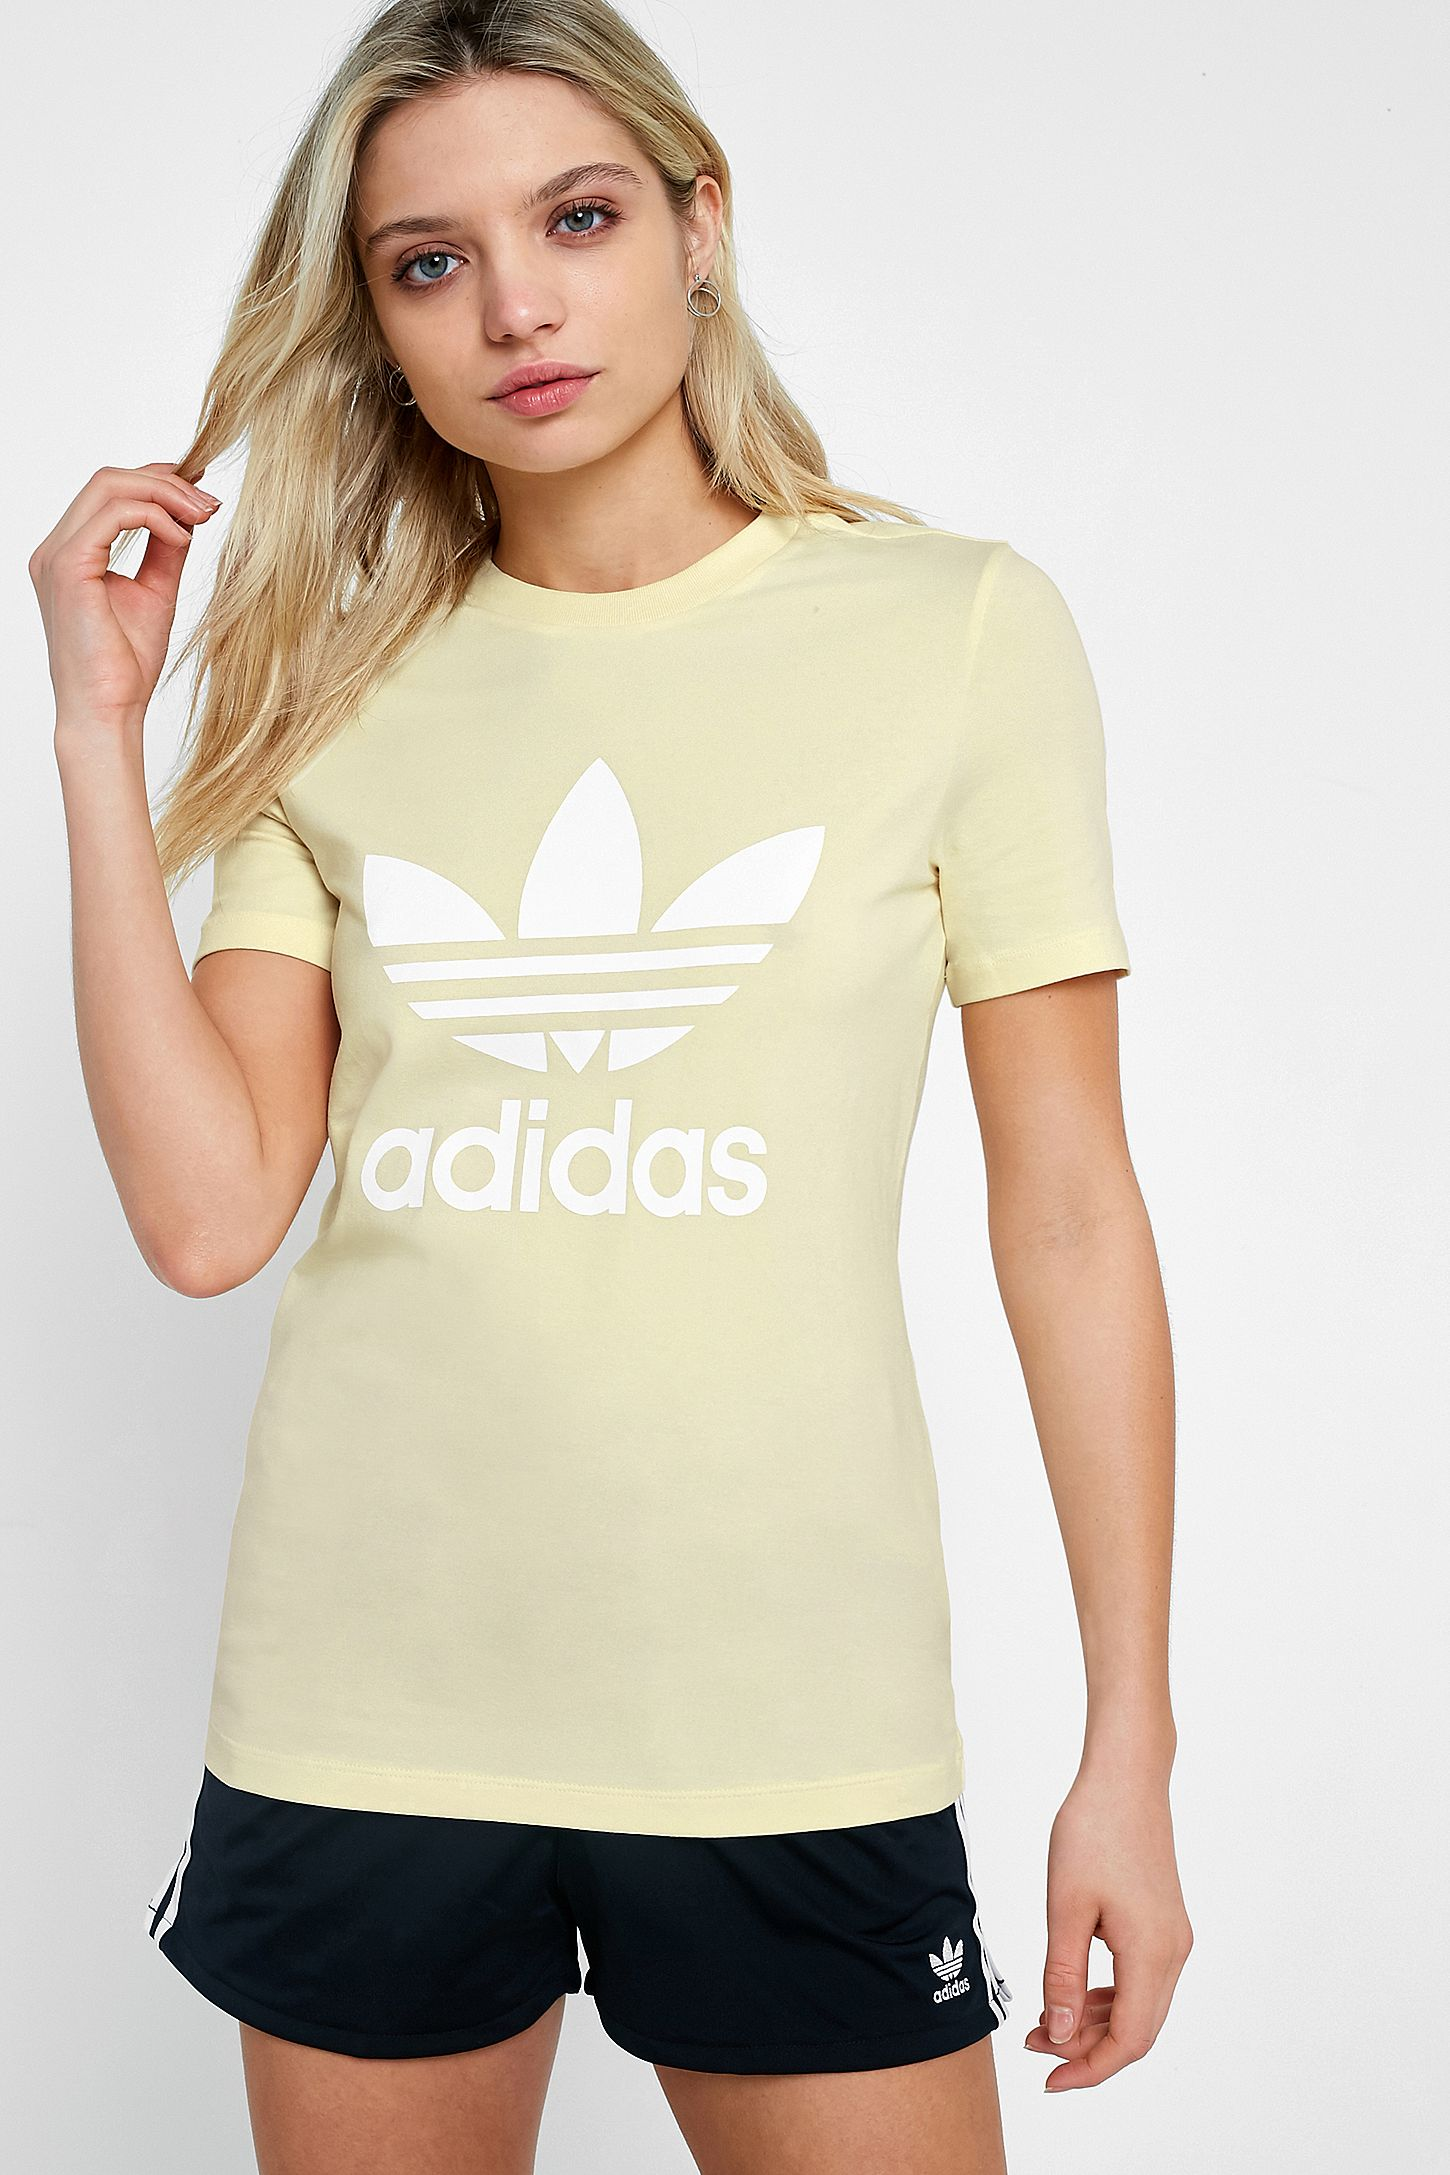 Adidas Originals Pastel Yellow Trefoil T Shirt Urban Outfitters Uk